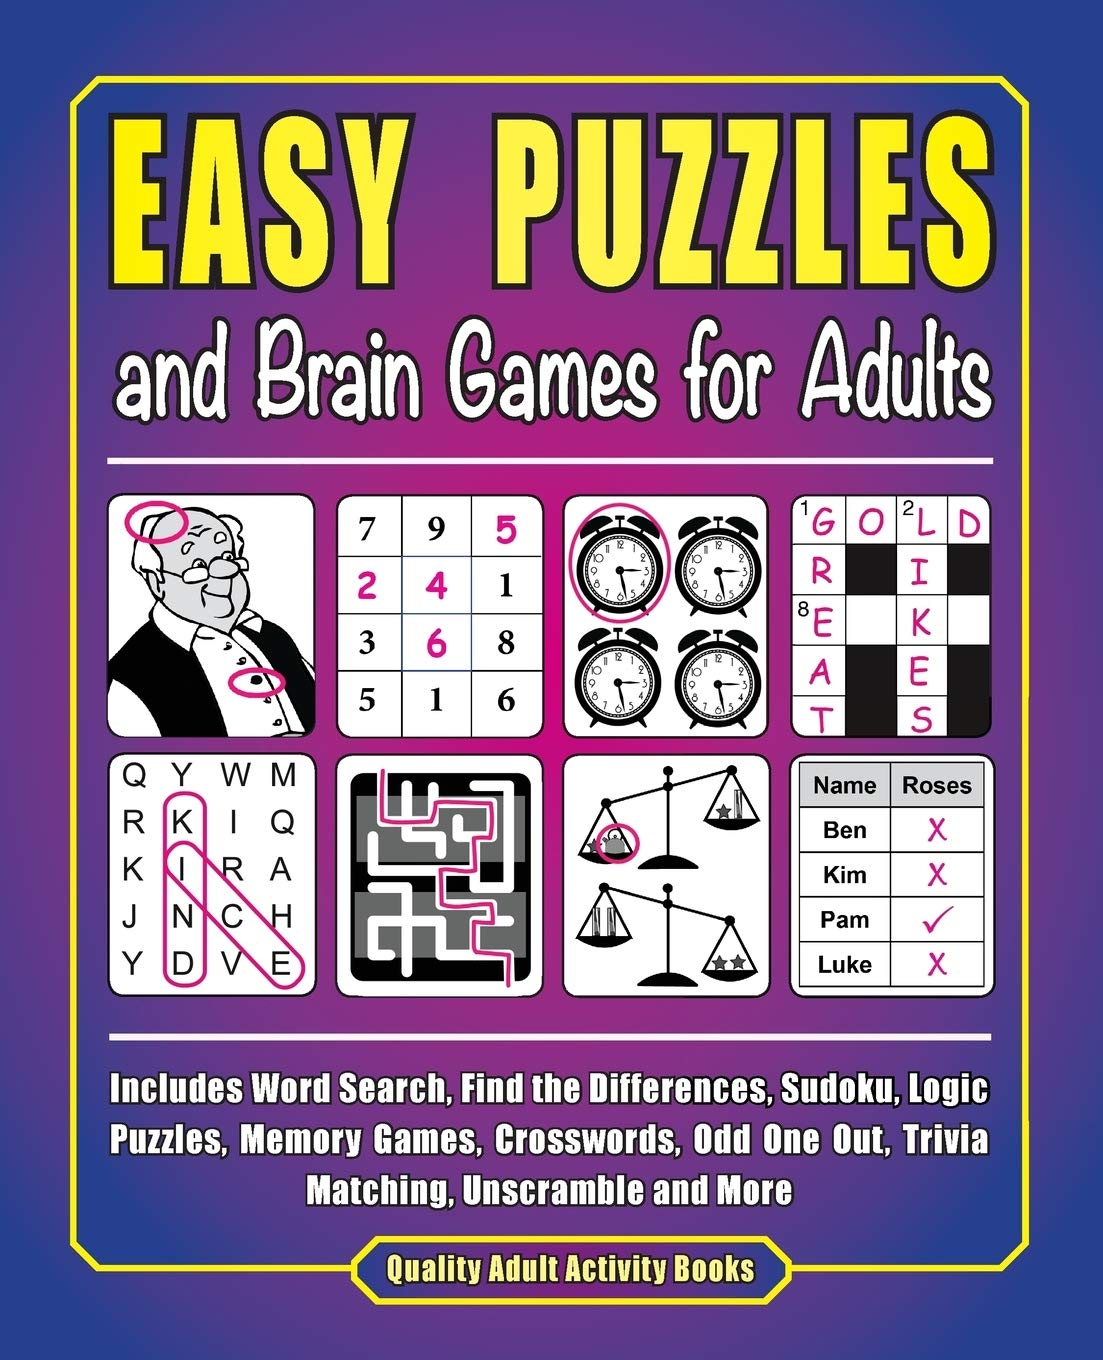 Easy puzzles for adults